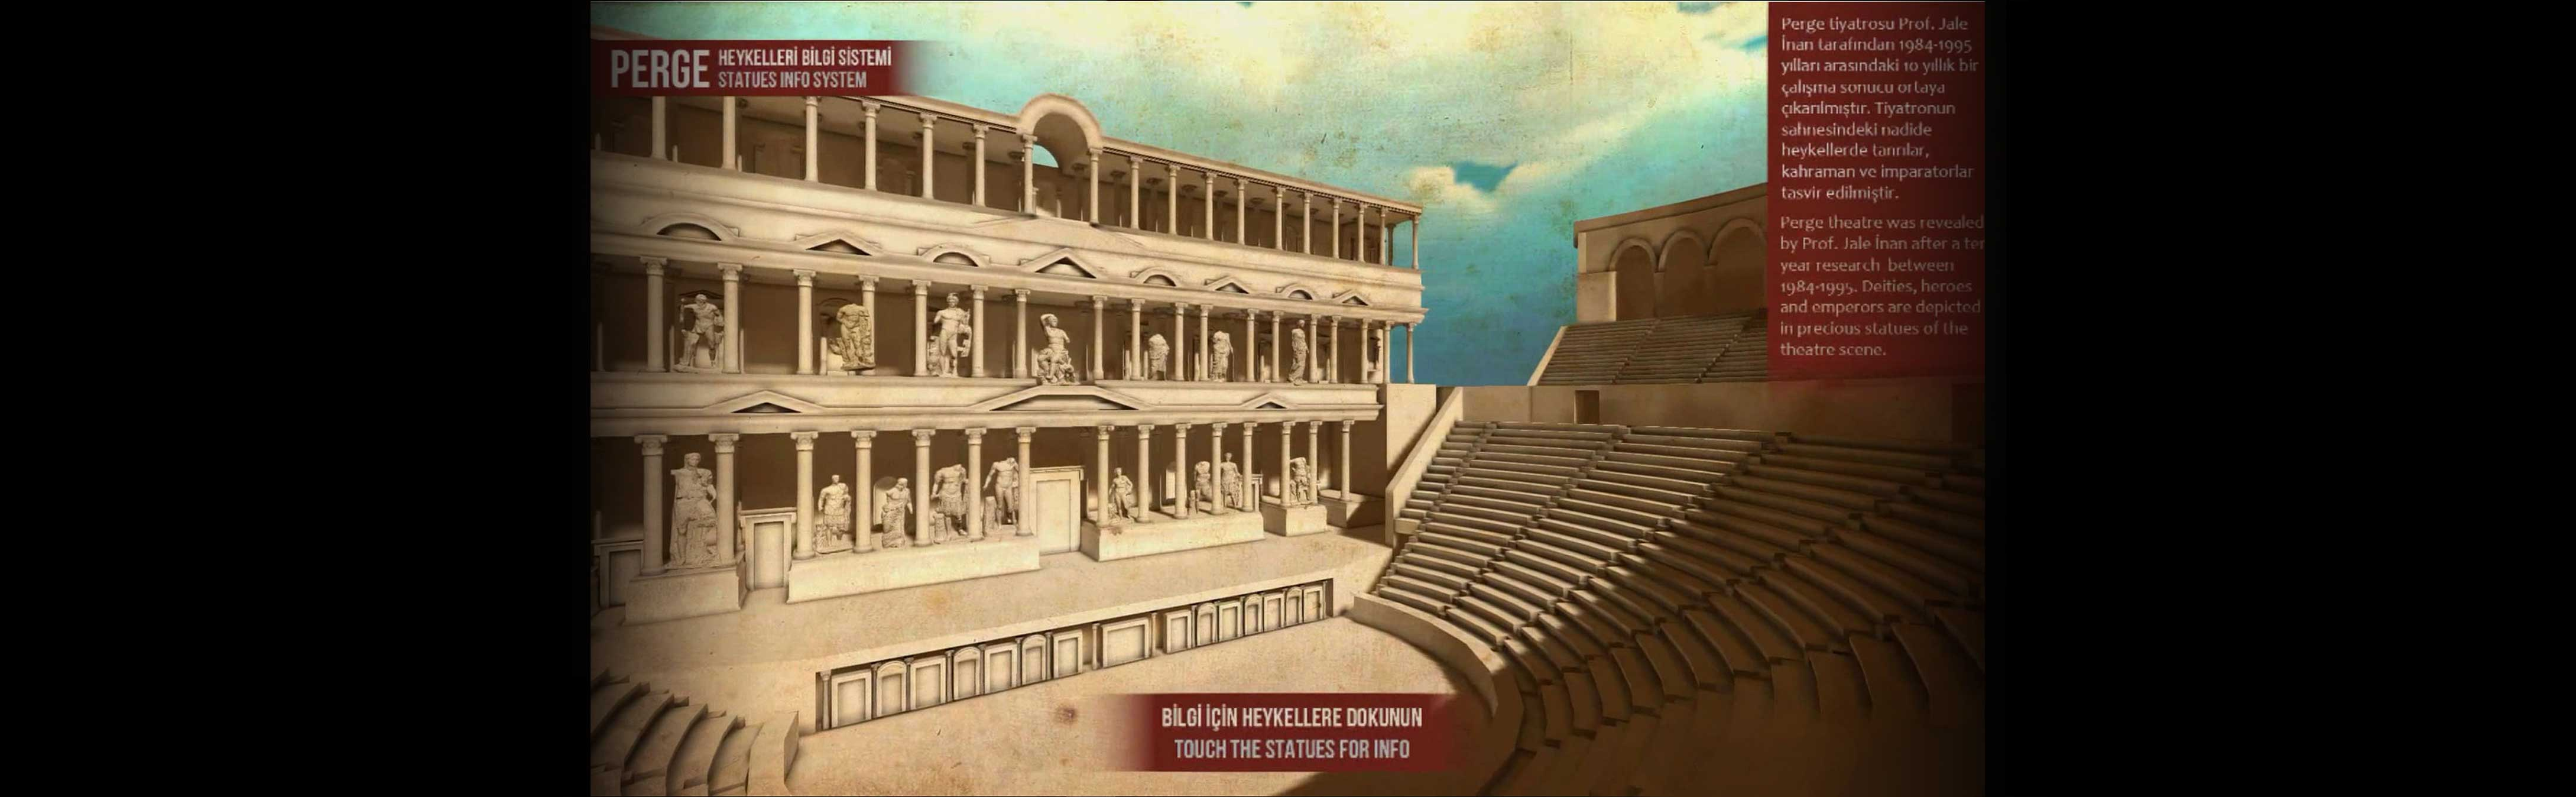 Ancient Perge Theater Visualizer